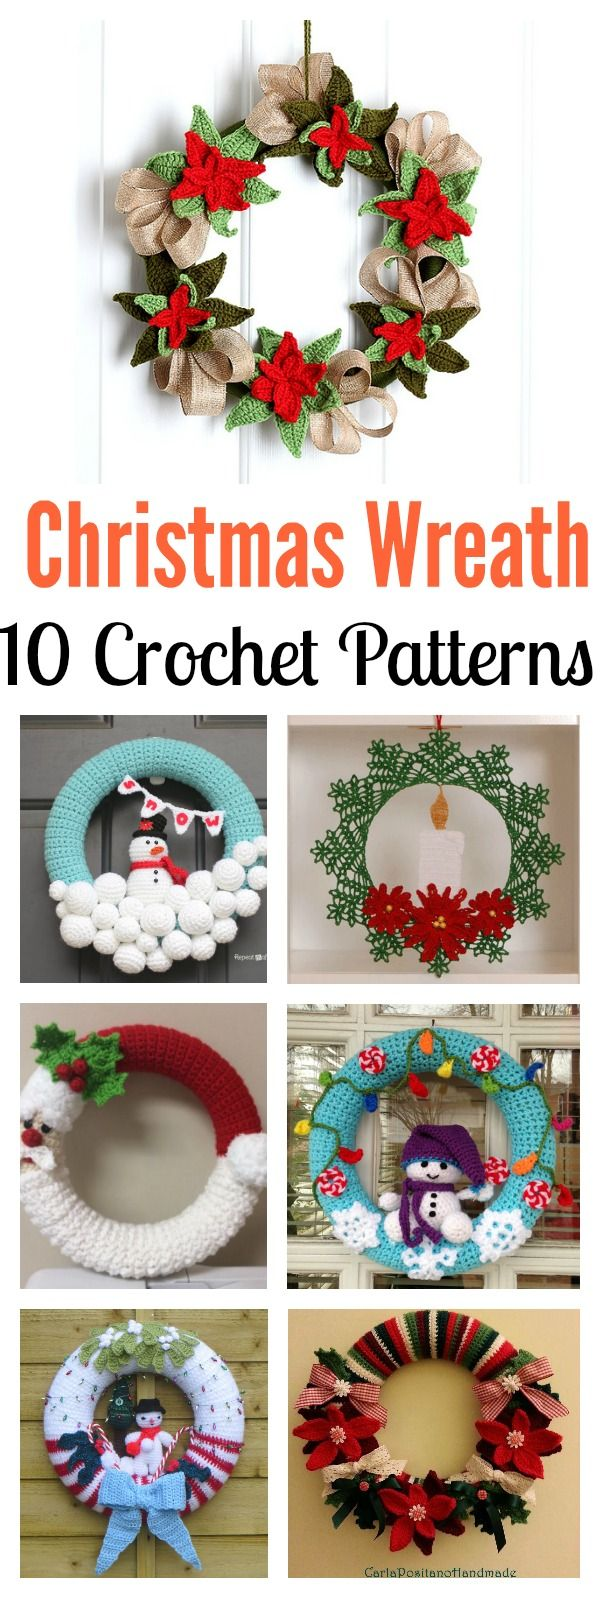 10+ Christmas Wreath Crochet Patterns | Wreaths, Crochet and Patterns